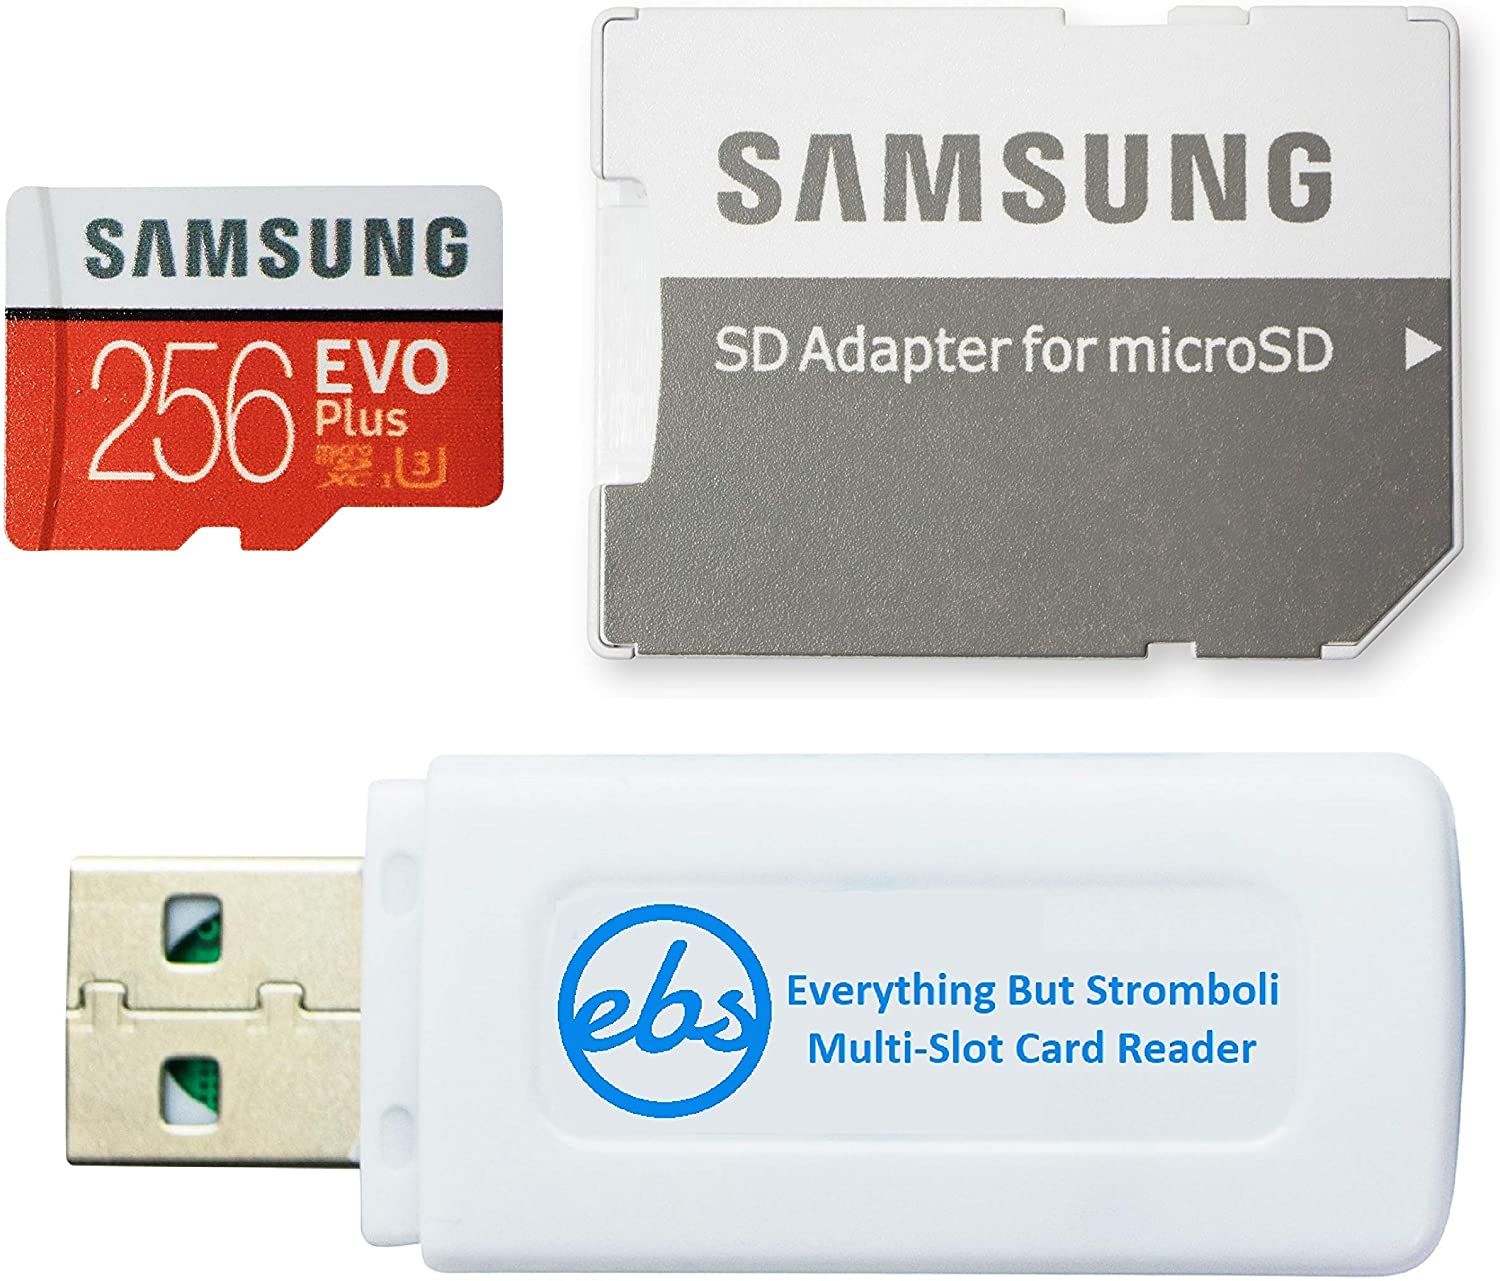 Samsung Evo Plus 256GB Micro SDXC Memory Card Class 10 Works with Android Phones - Galaxy A51, A50, A40, A30 (MB-MC256G) Bundle with (1) Everything But Stromboli MicroSD & SD Card Reader